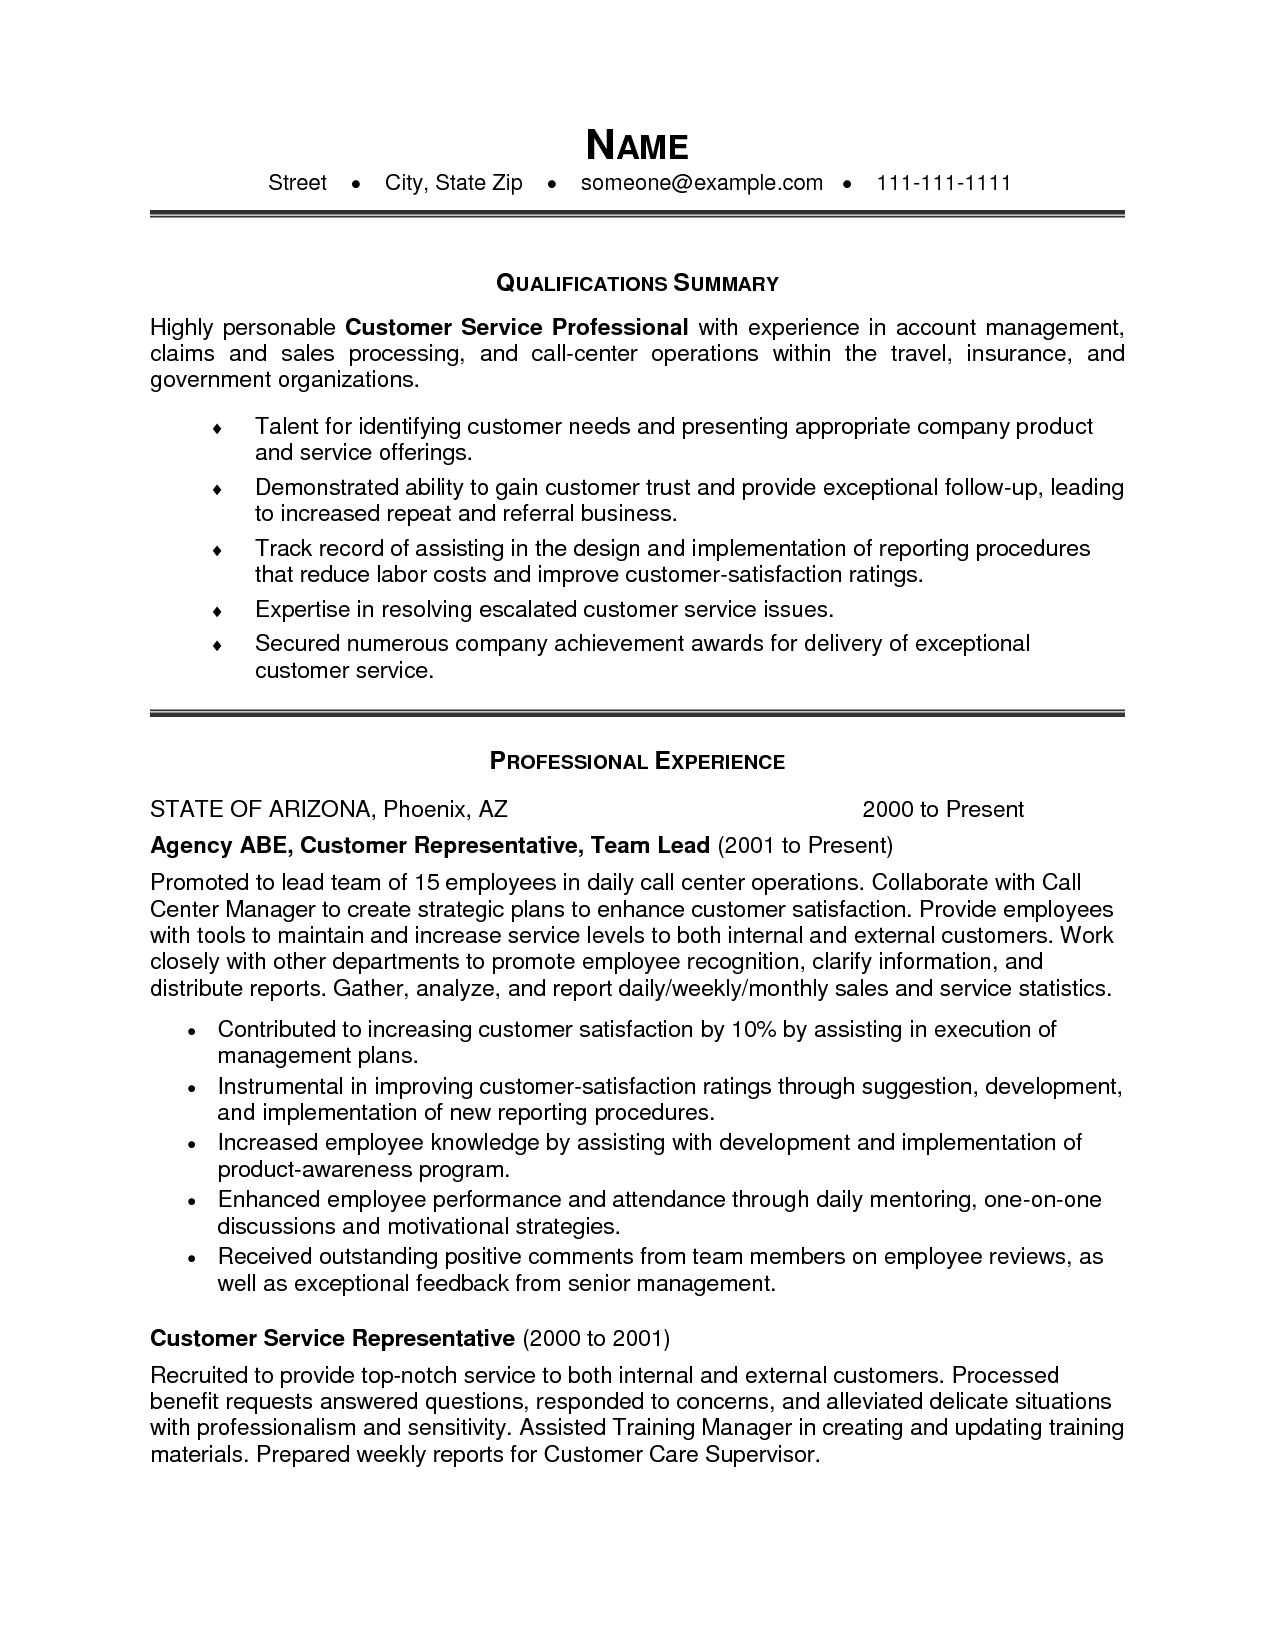 resume marvelous career summary examples for photo inspirations professional along with Resume Customer Service Resume Overview